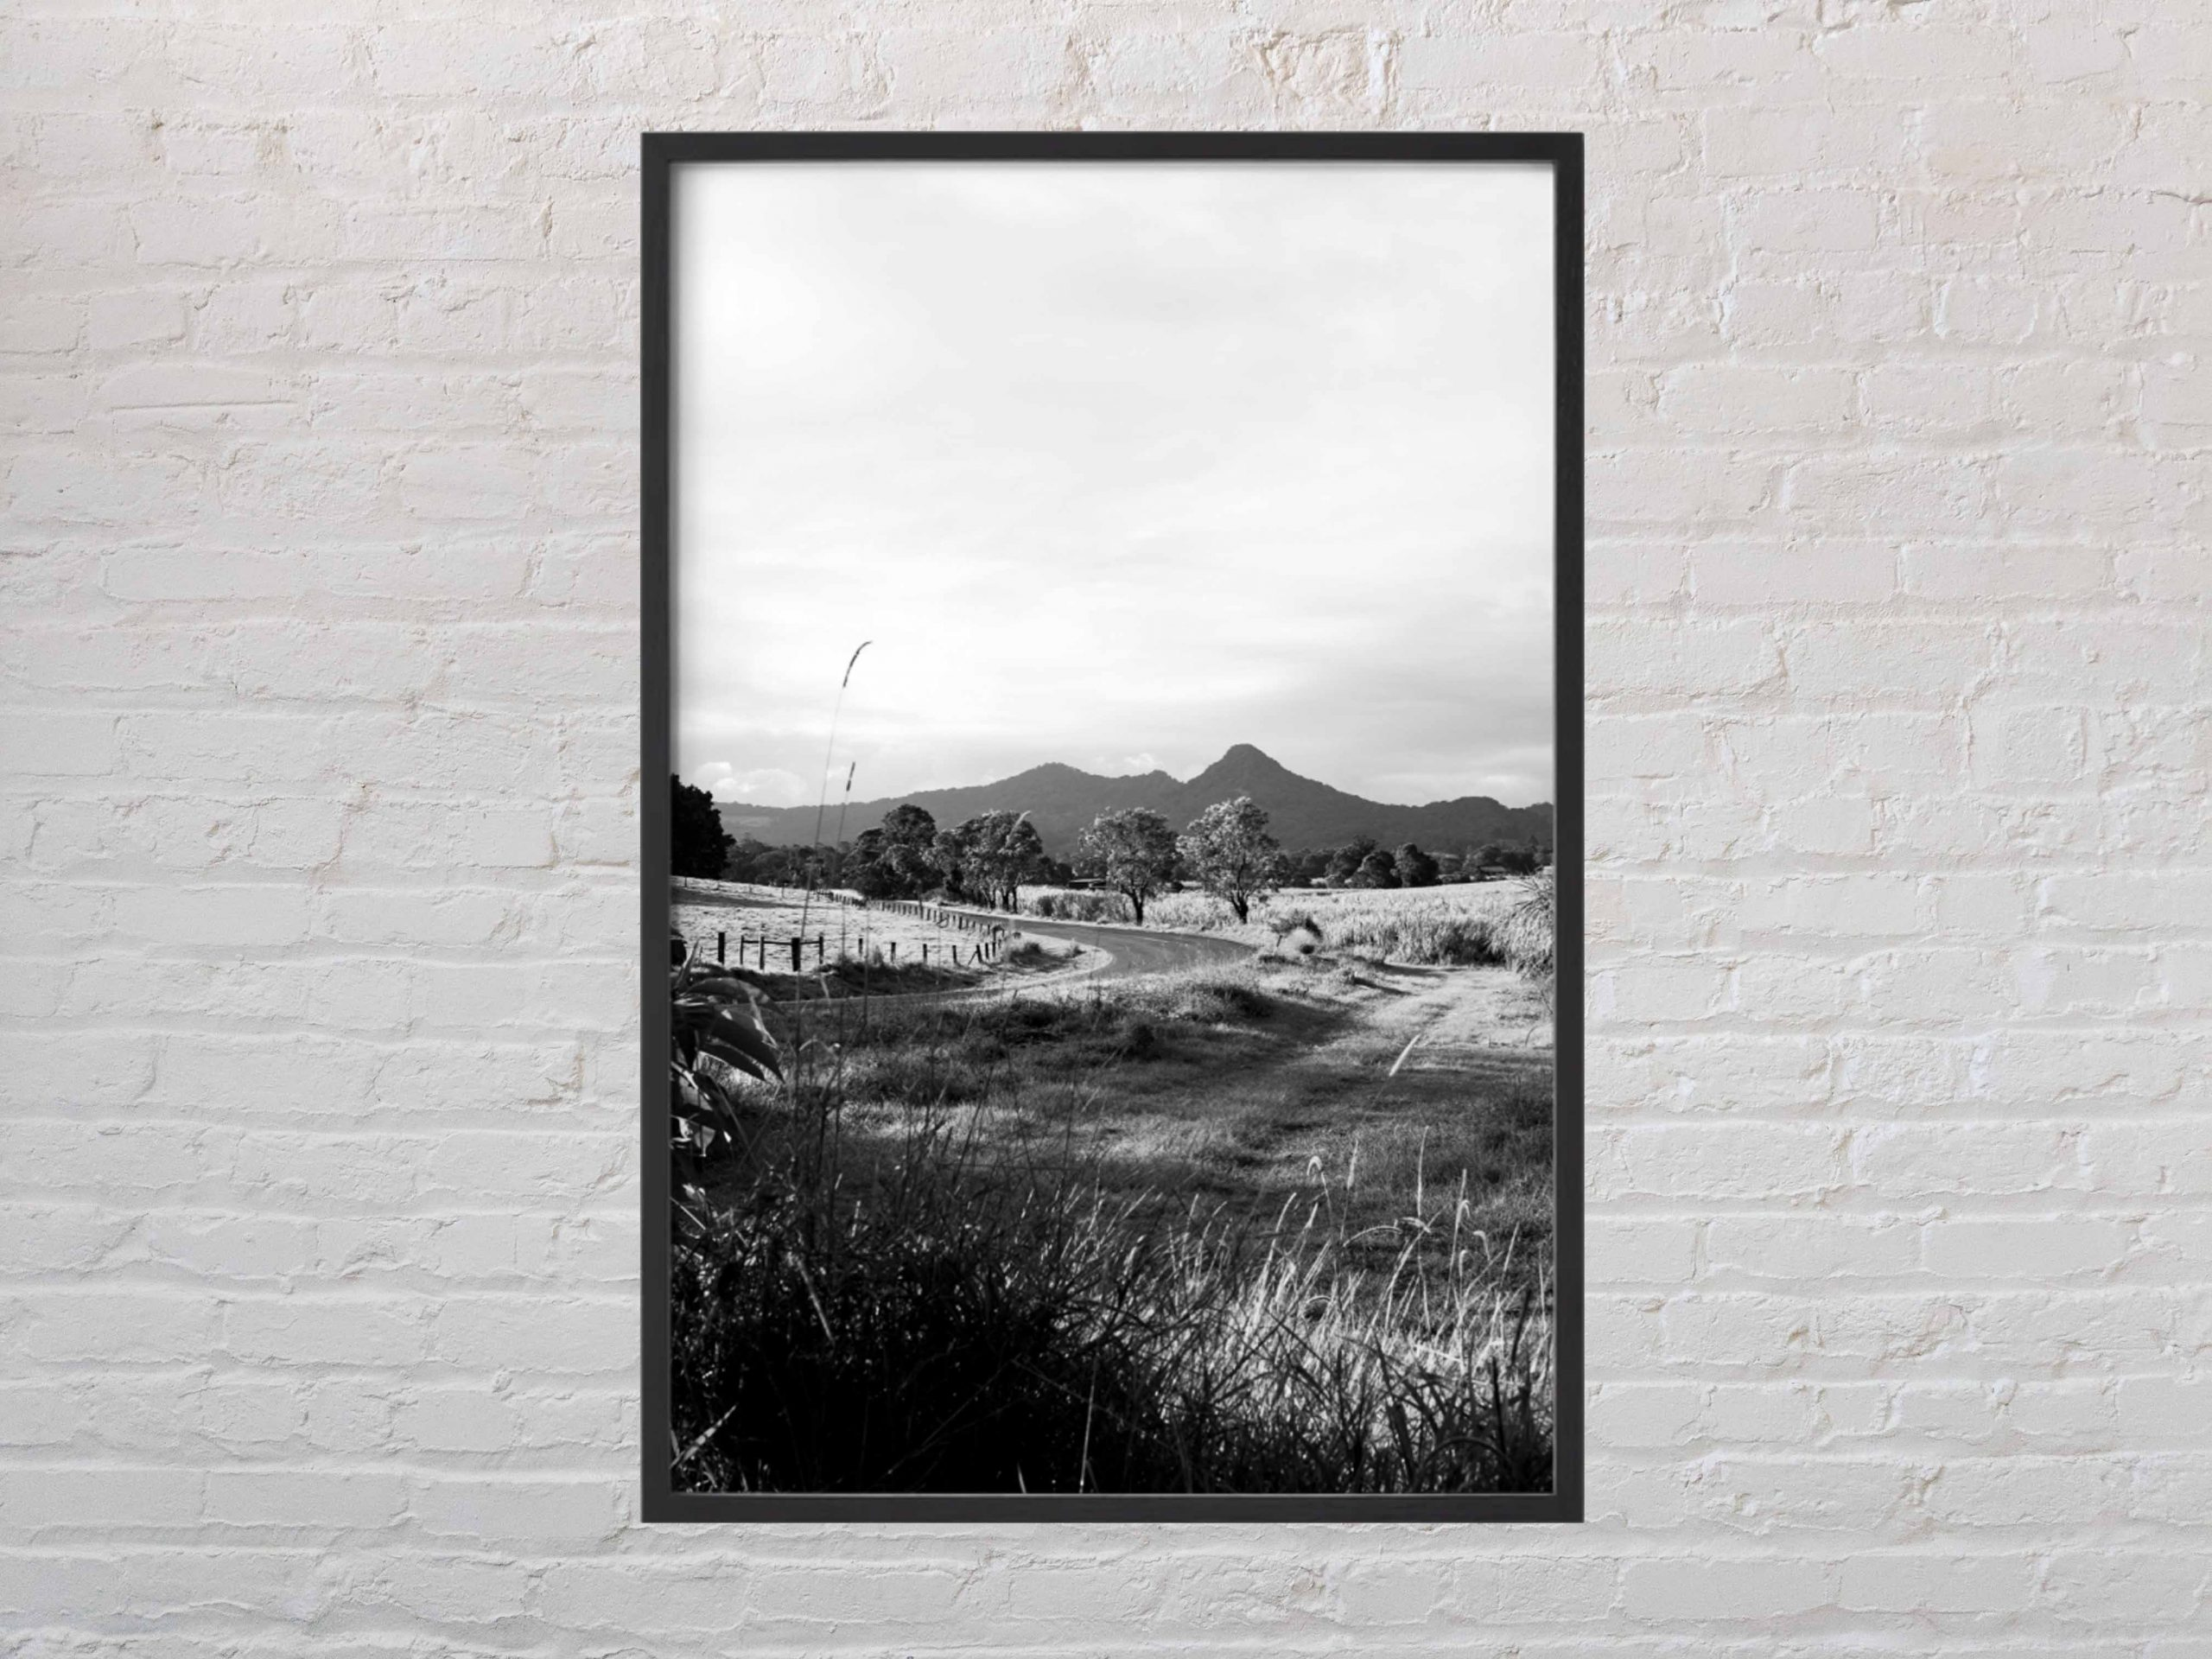 'Apex' shown with black frame. Mount Chincogan, Mullumbimby, NSW, Australia